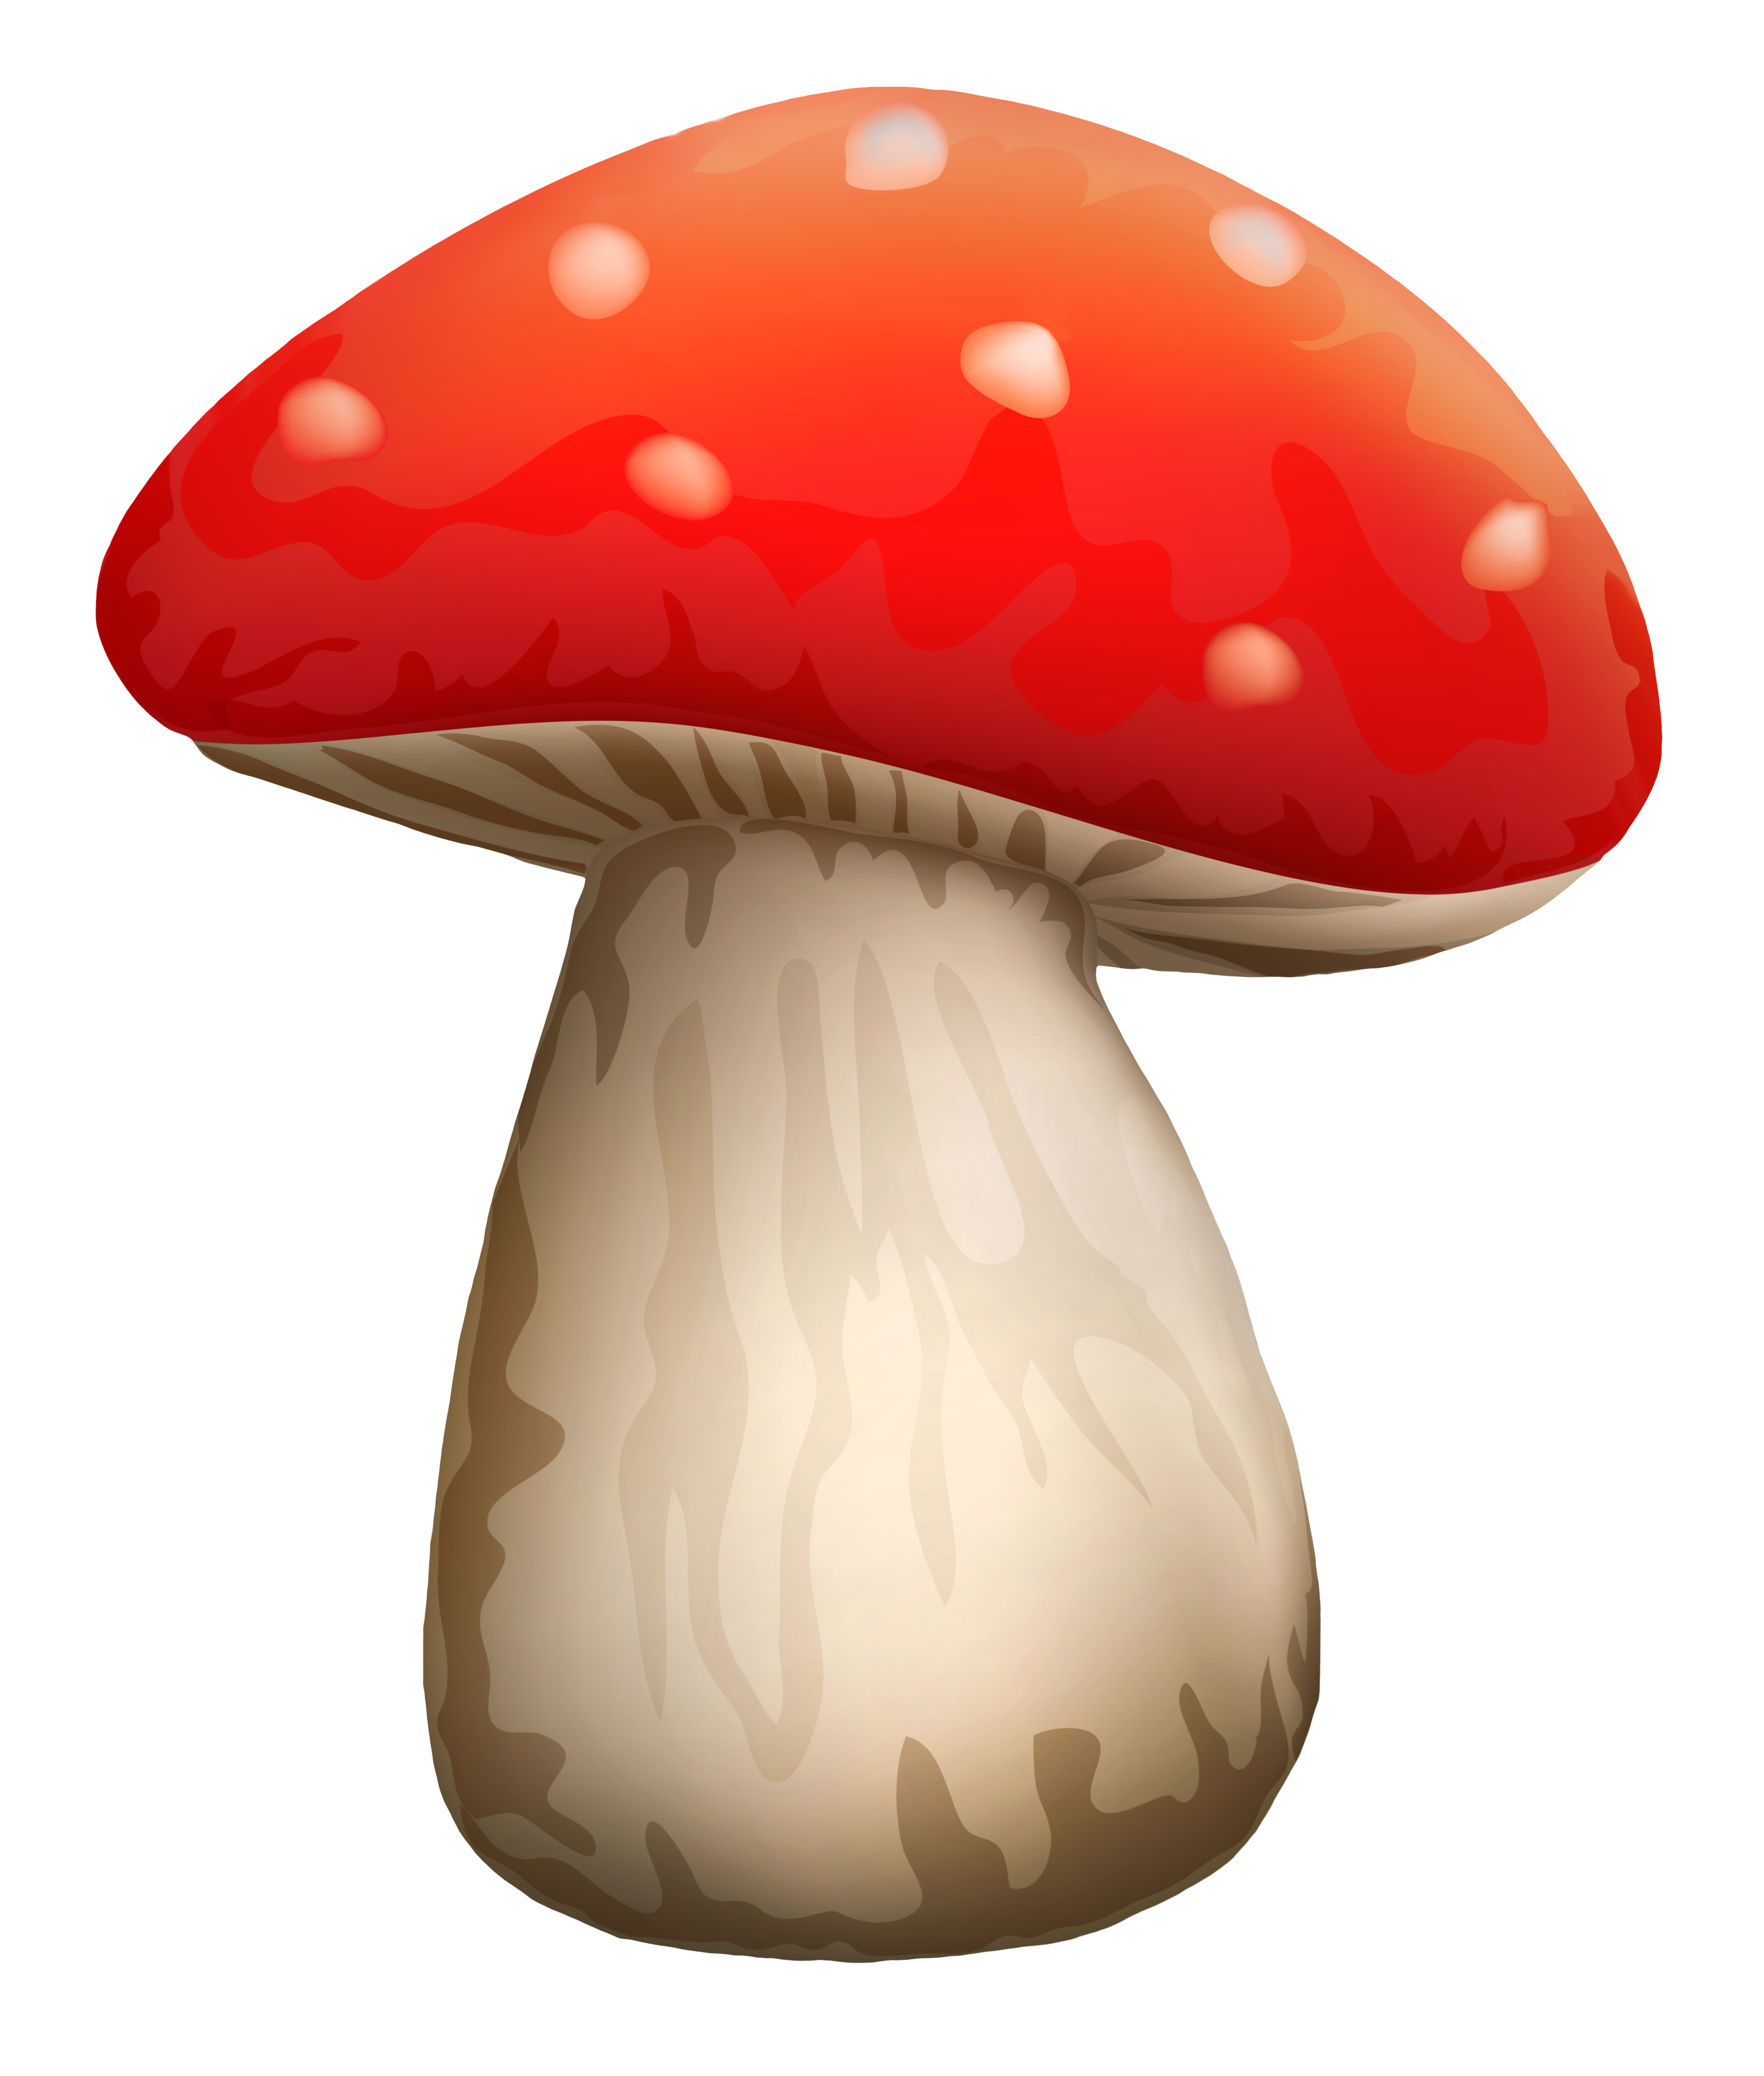 Mushrooms clipart mushroom plant. Poisonous red with white